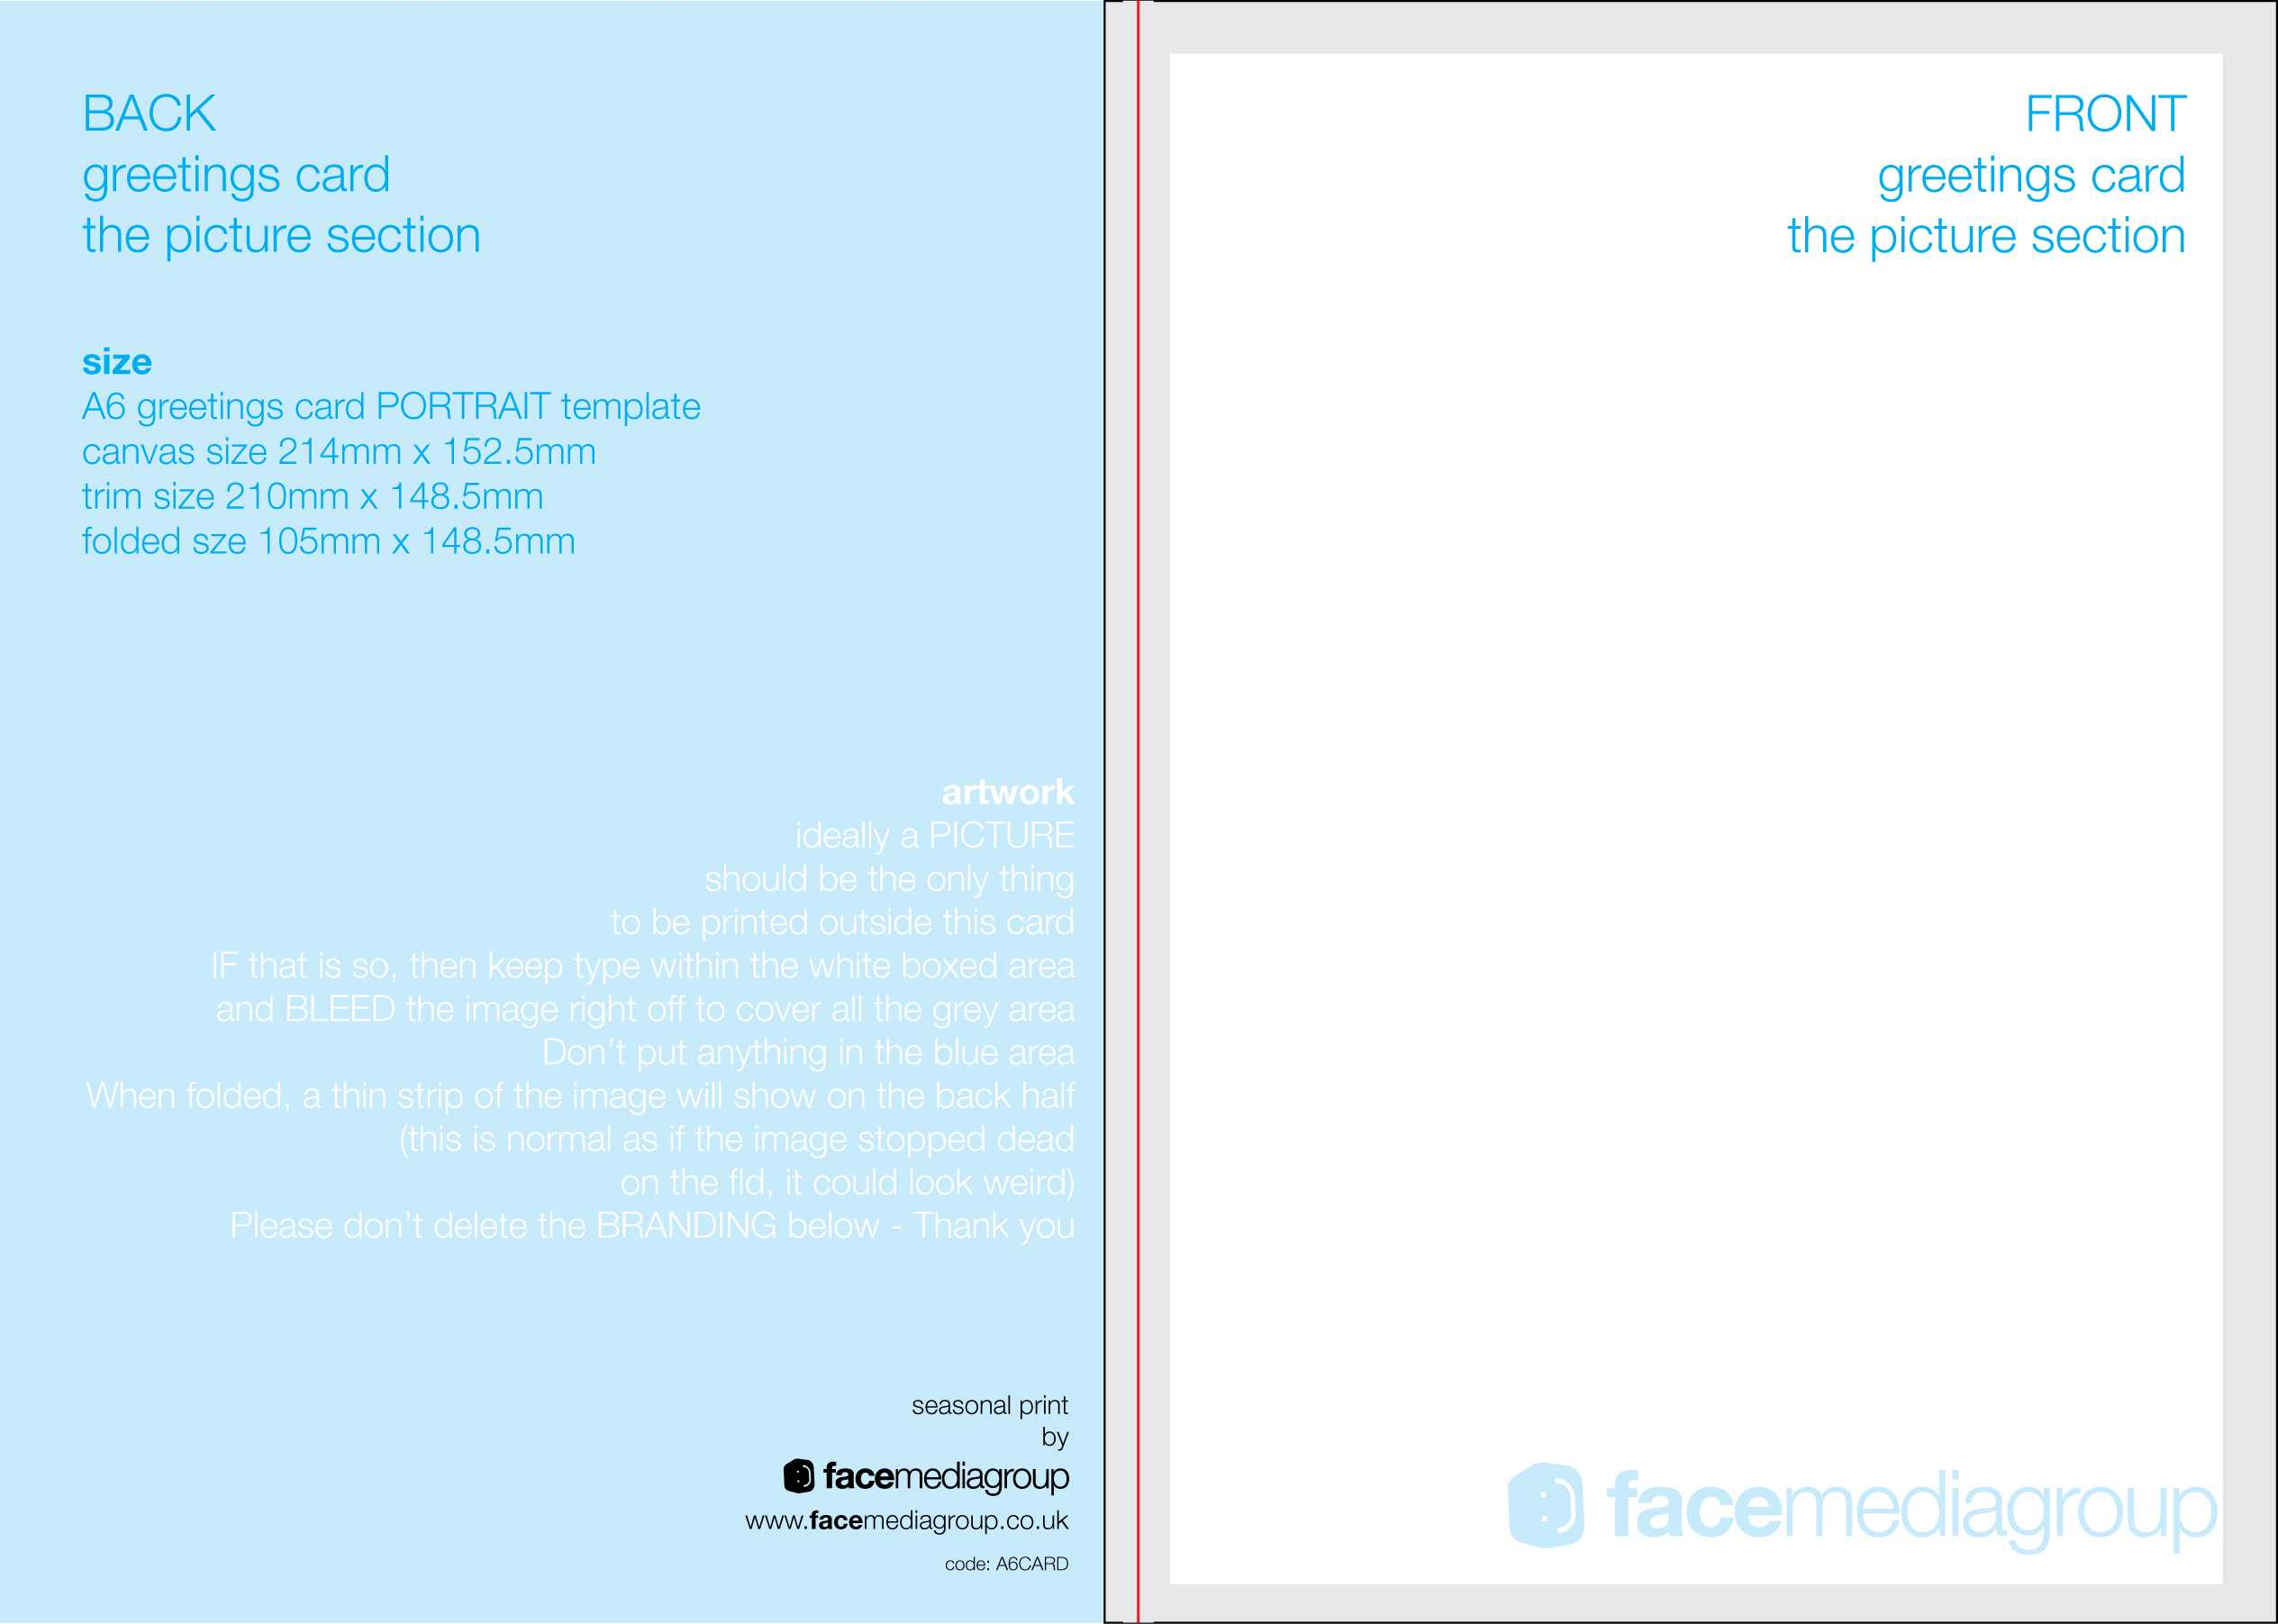 Free Blank Greetings Card Artwork Templates For Download Intended For Free Printable Blank Greeting Card Templates